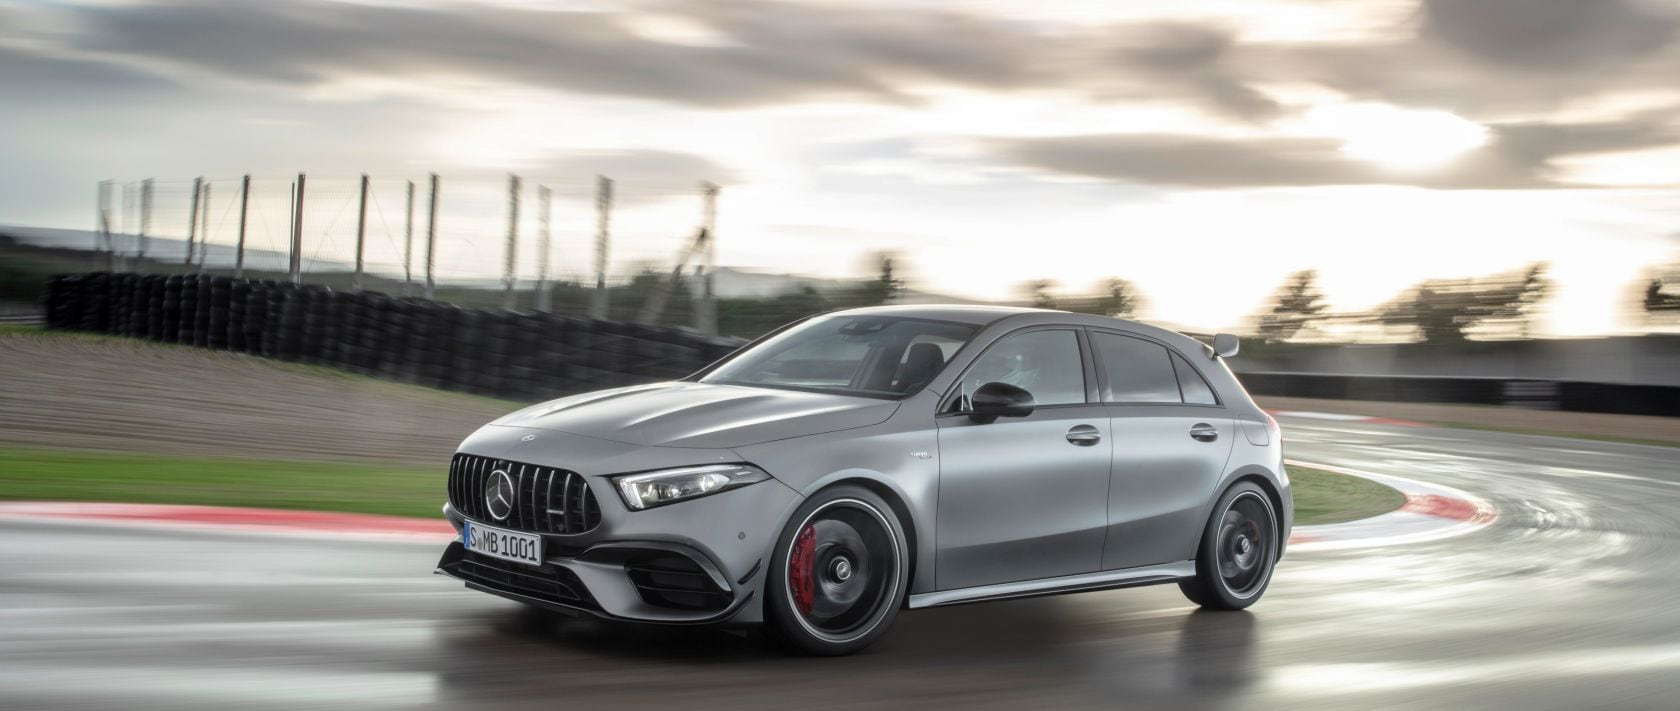 The new 2020 Mercedes-AMG A 45 4MATIC+ (W 177) in designo mountain grey magno in the curve of a racetrack.